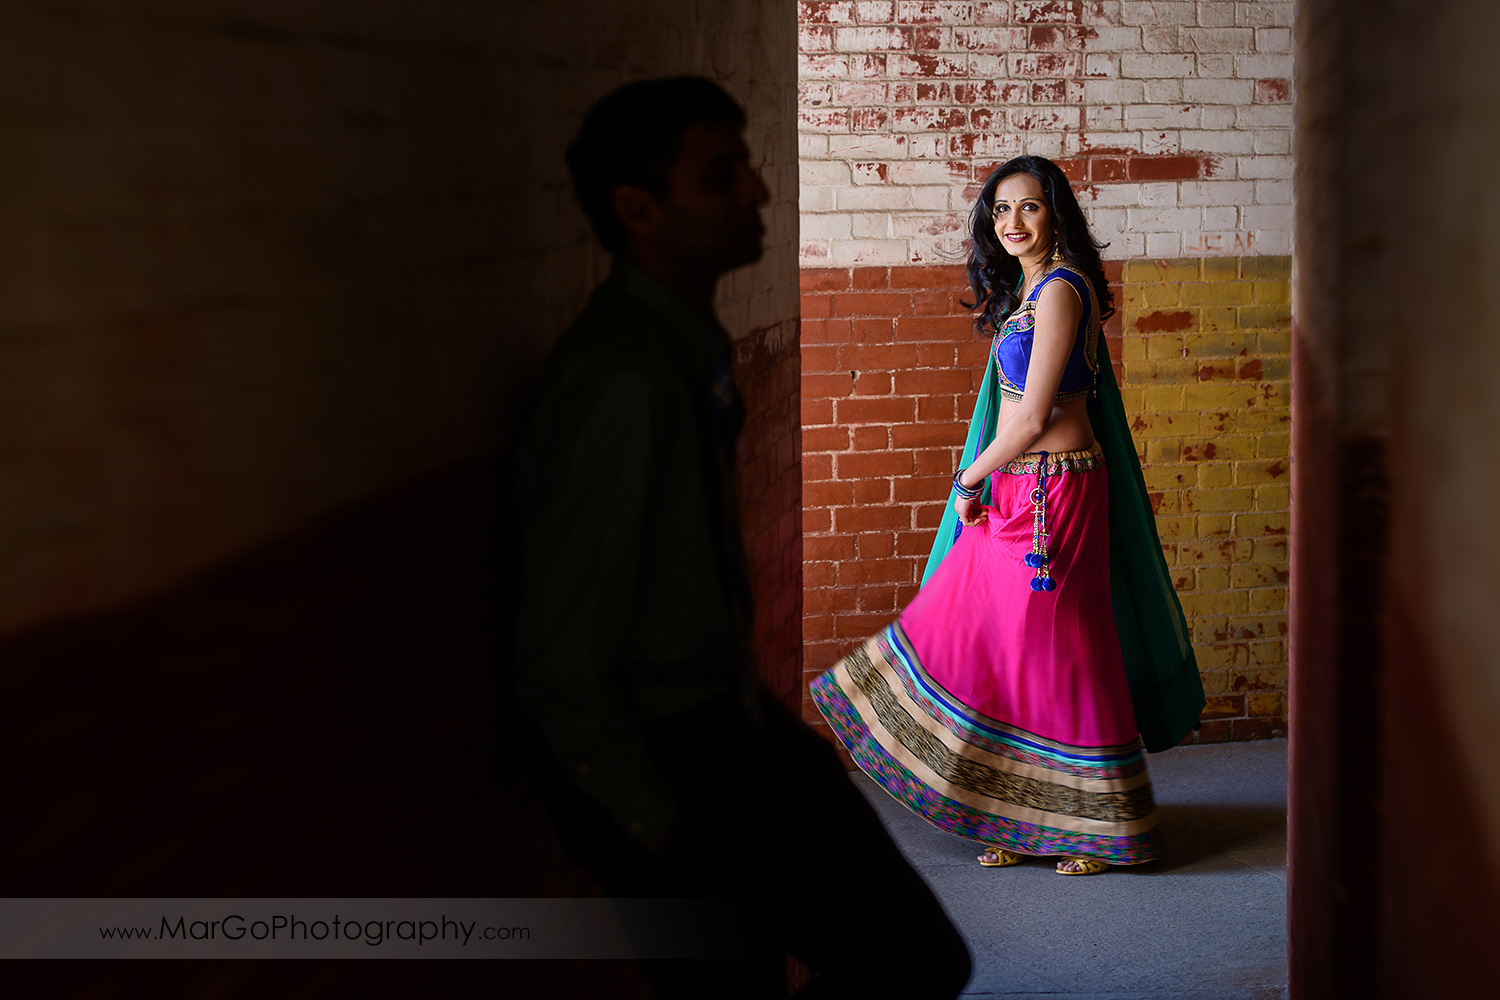 portrait of Indian woman in pink and green dress on the brick wall with silhouette of Indian man during engagement session at San Francisco Fort Point